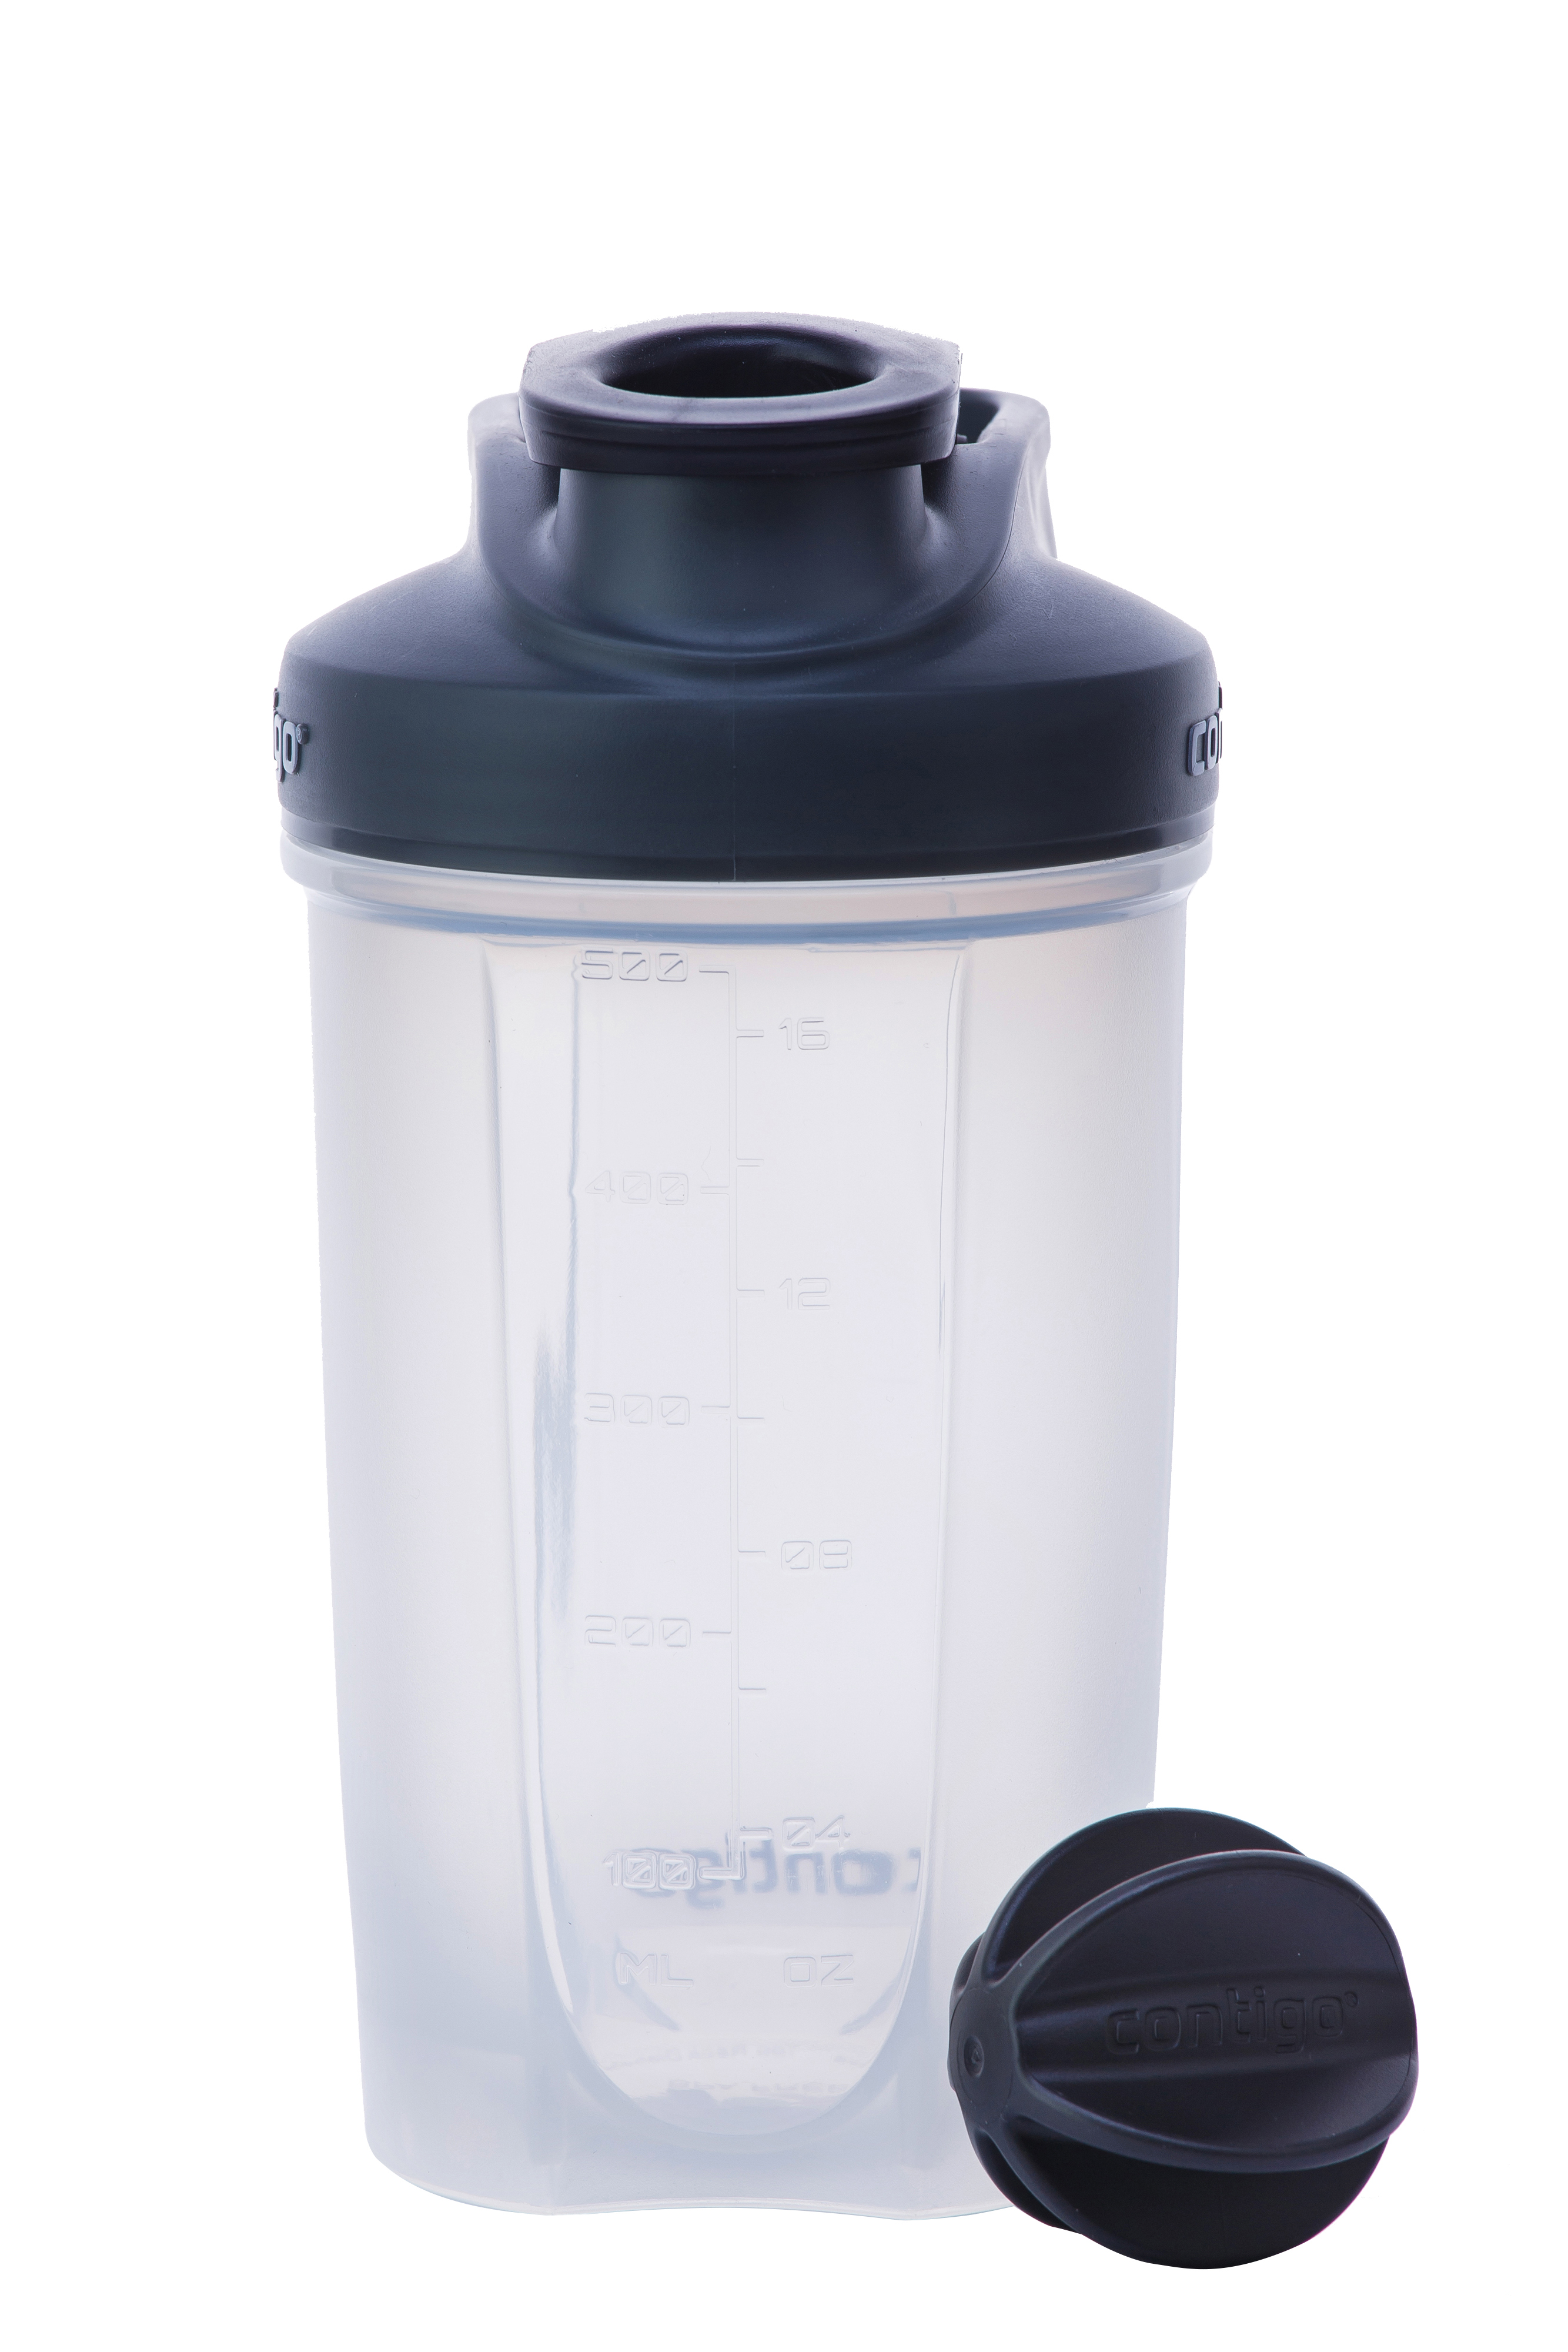 SHAKE & GO FIT - BLACK - CONTIGO